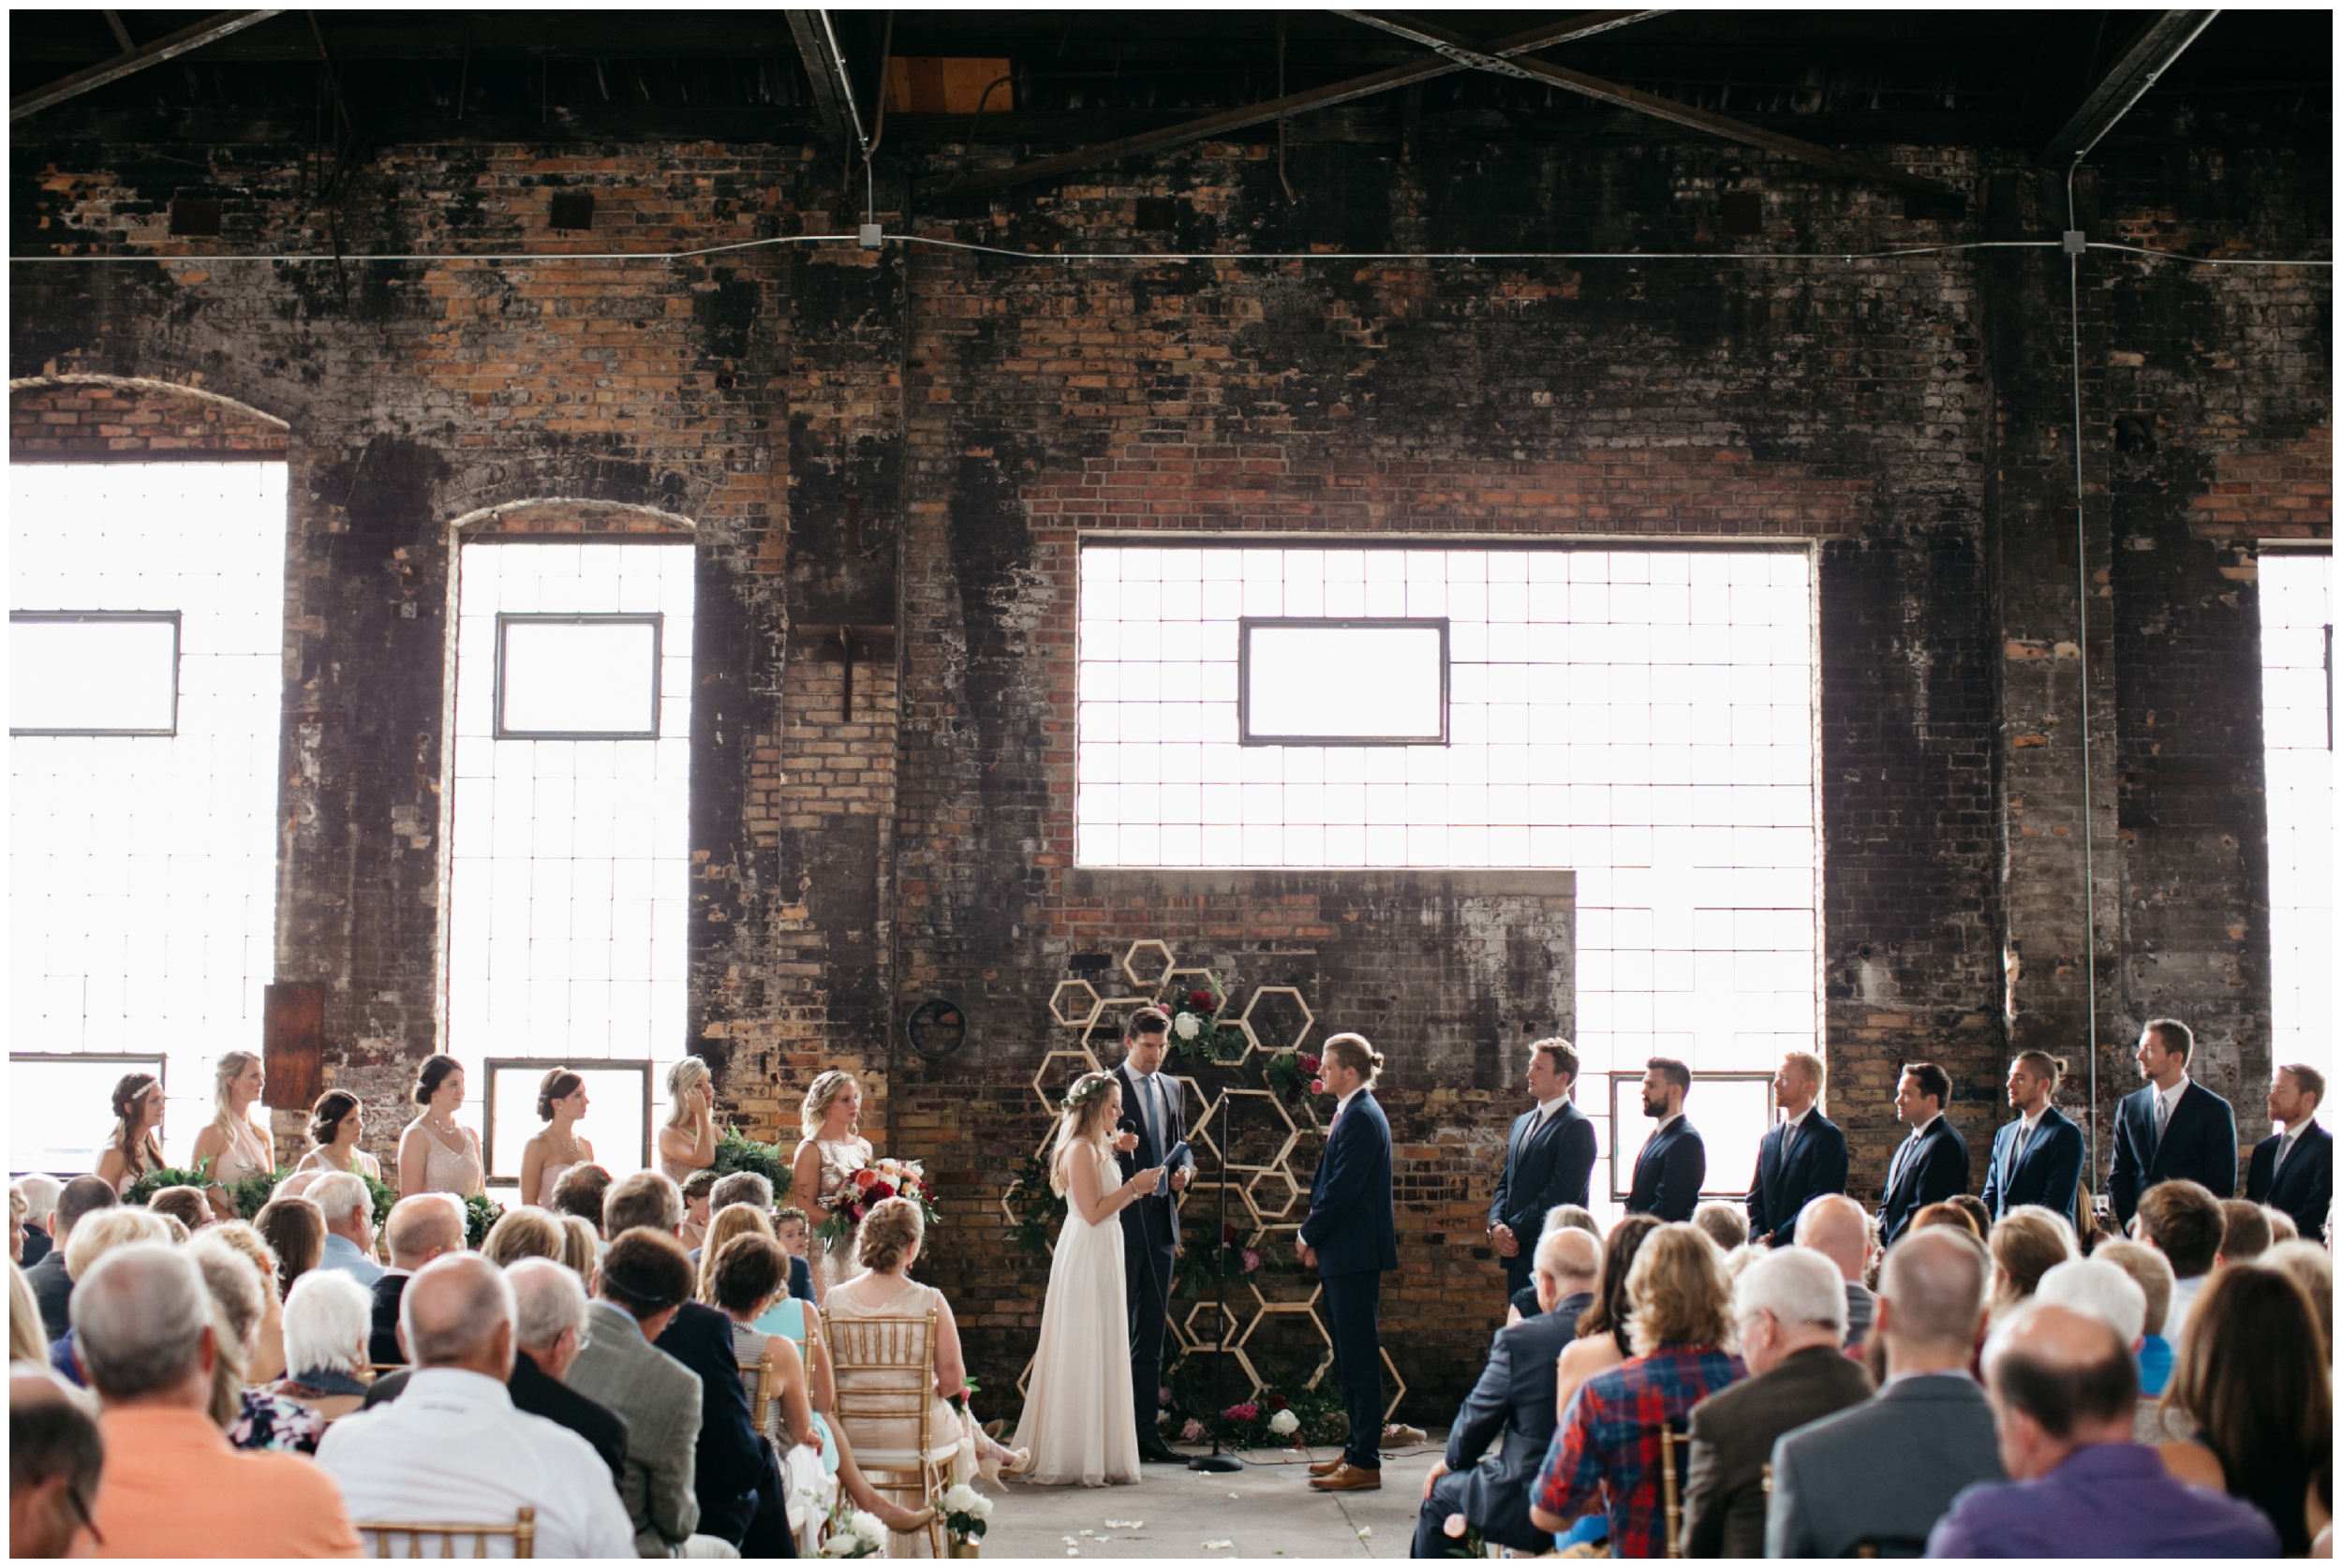 NP Event Space indoor wedding ceremony